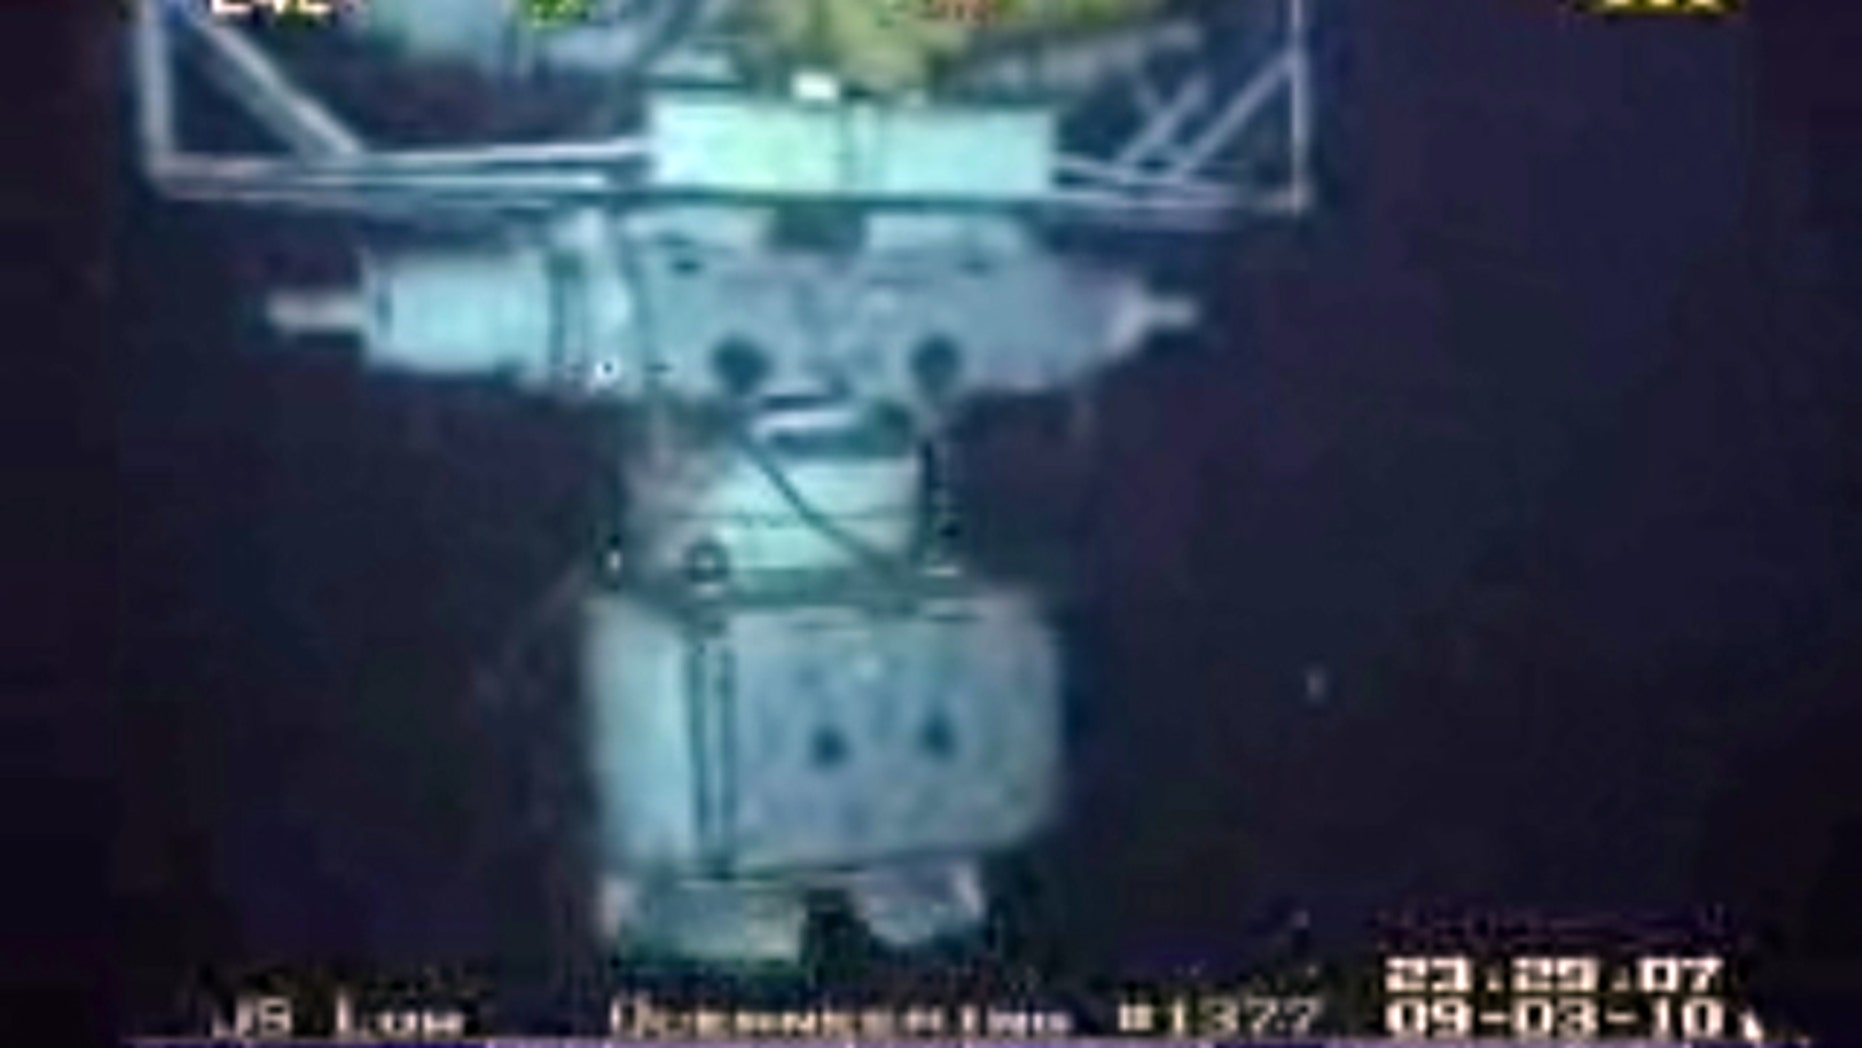 In this image taken from video provided by BP  PLC at 12:23 a.m. EDT, Saturday Sept. 4, 2010 Aug. 3, 2010 shows the blowout preventer that failed to stop oil from spewing into the Gulf of Mexico being raised to the surface. The blowout preventer wasn't expected to reach the surface until Saturday, at which point government investigators will take possession of it.